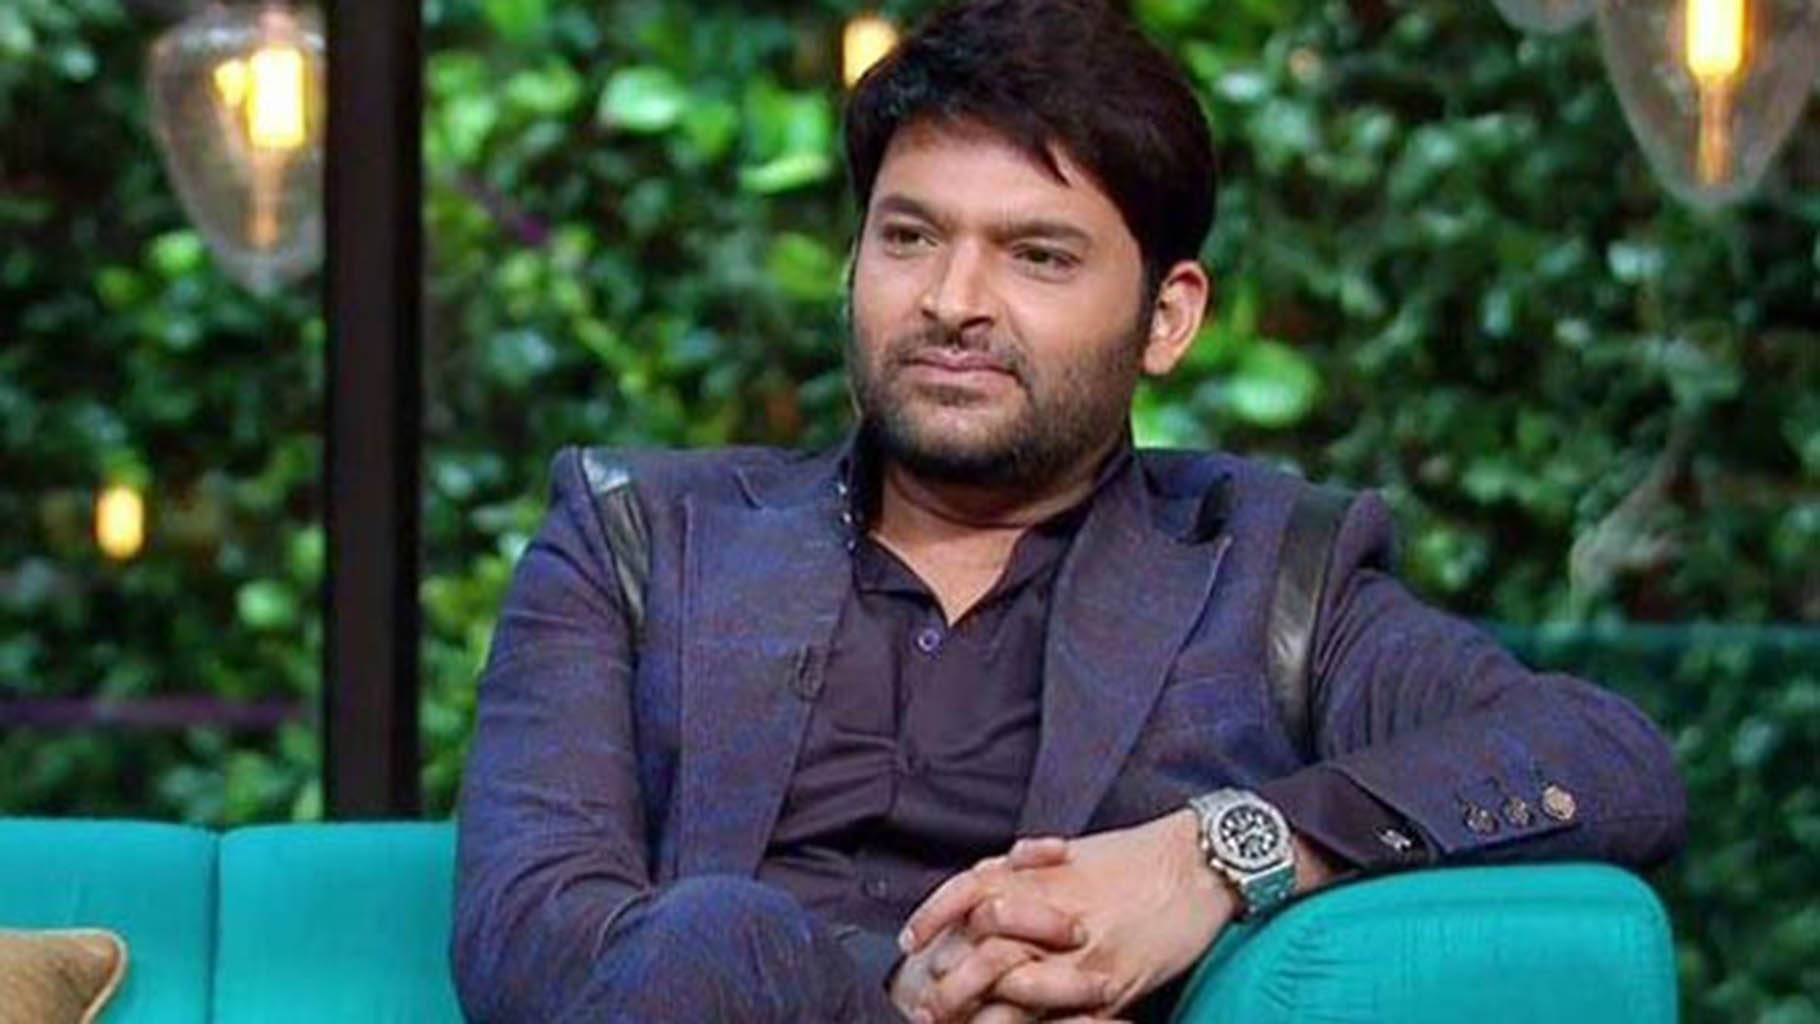 Kapil Sharma's journey: How a police constable's son became TV's most-loved comedian